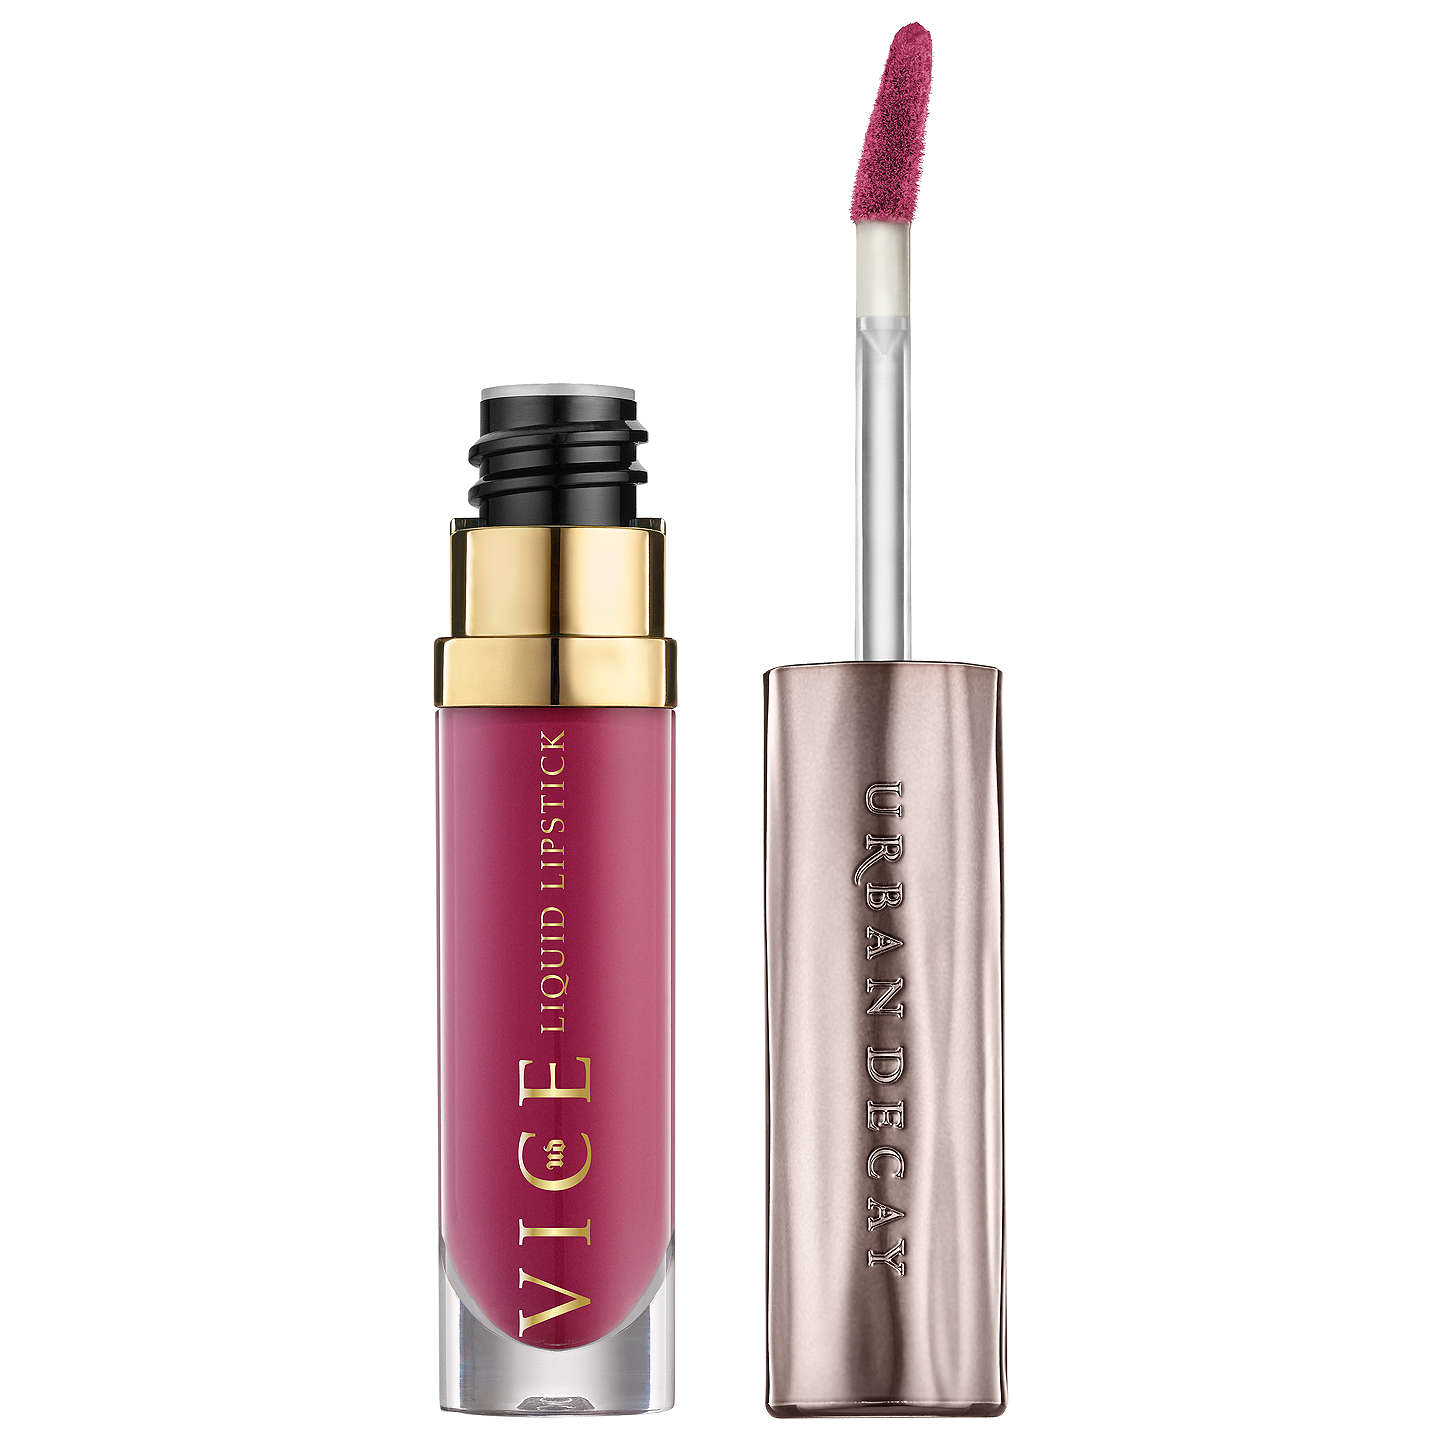 BuyUrban Decay Vice Liquid Lipstick, WSM Online at johnlewis.com